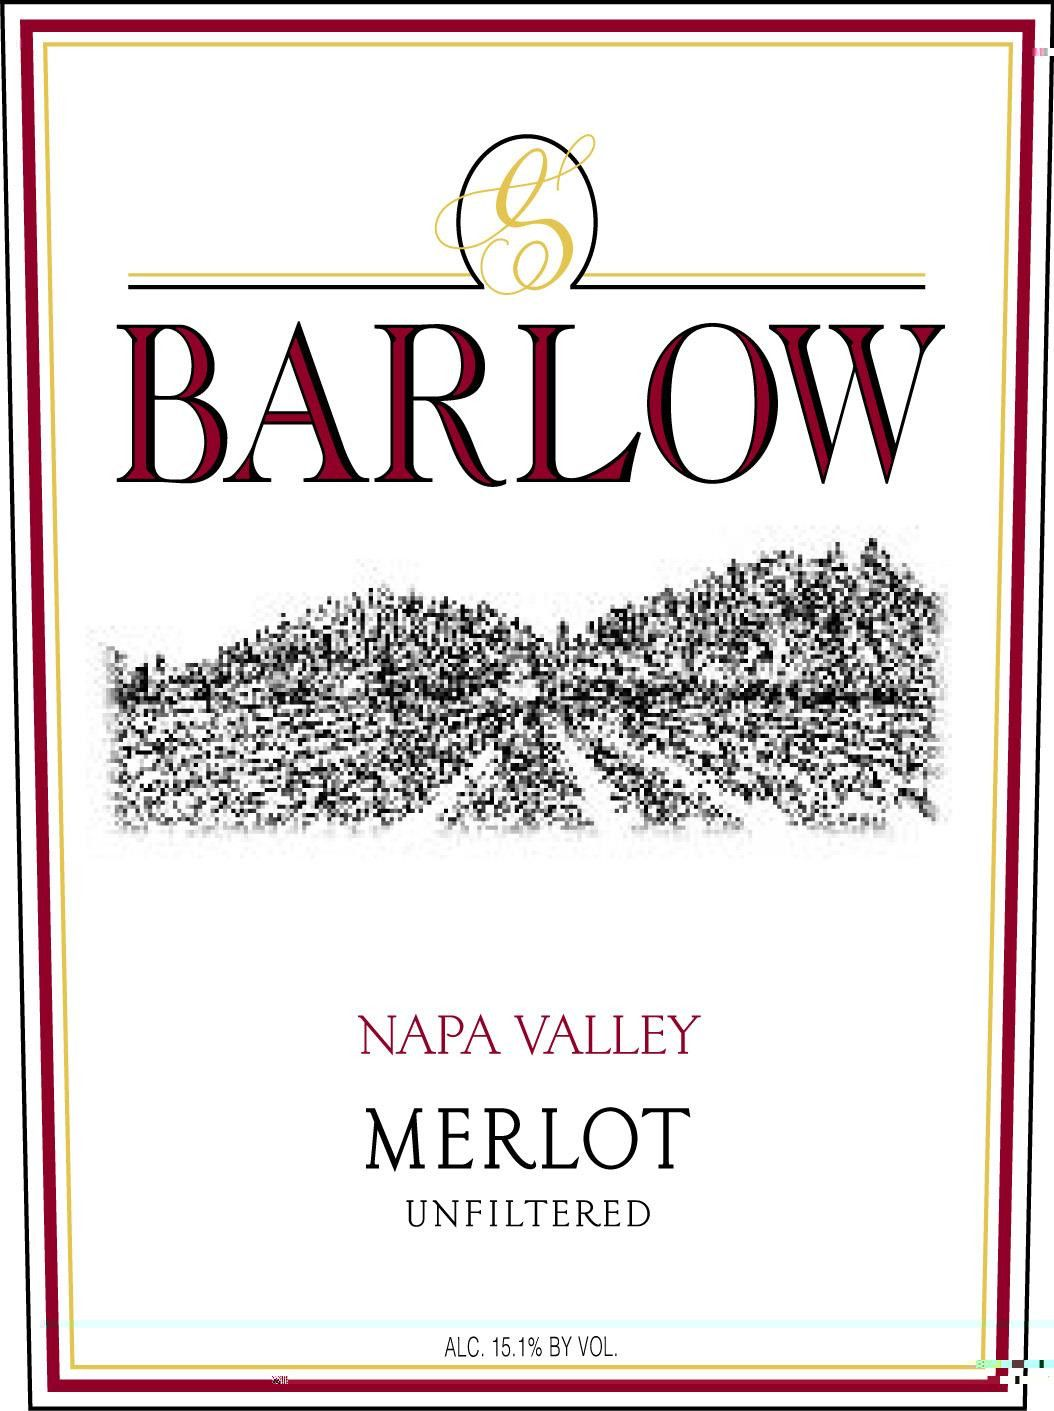 Barlow Unfiltered Merlot 2009 Front Label